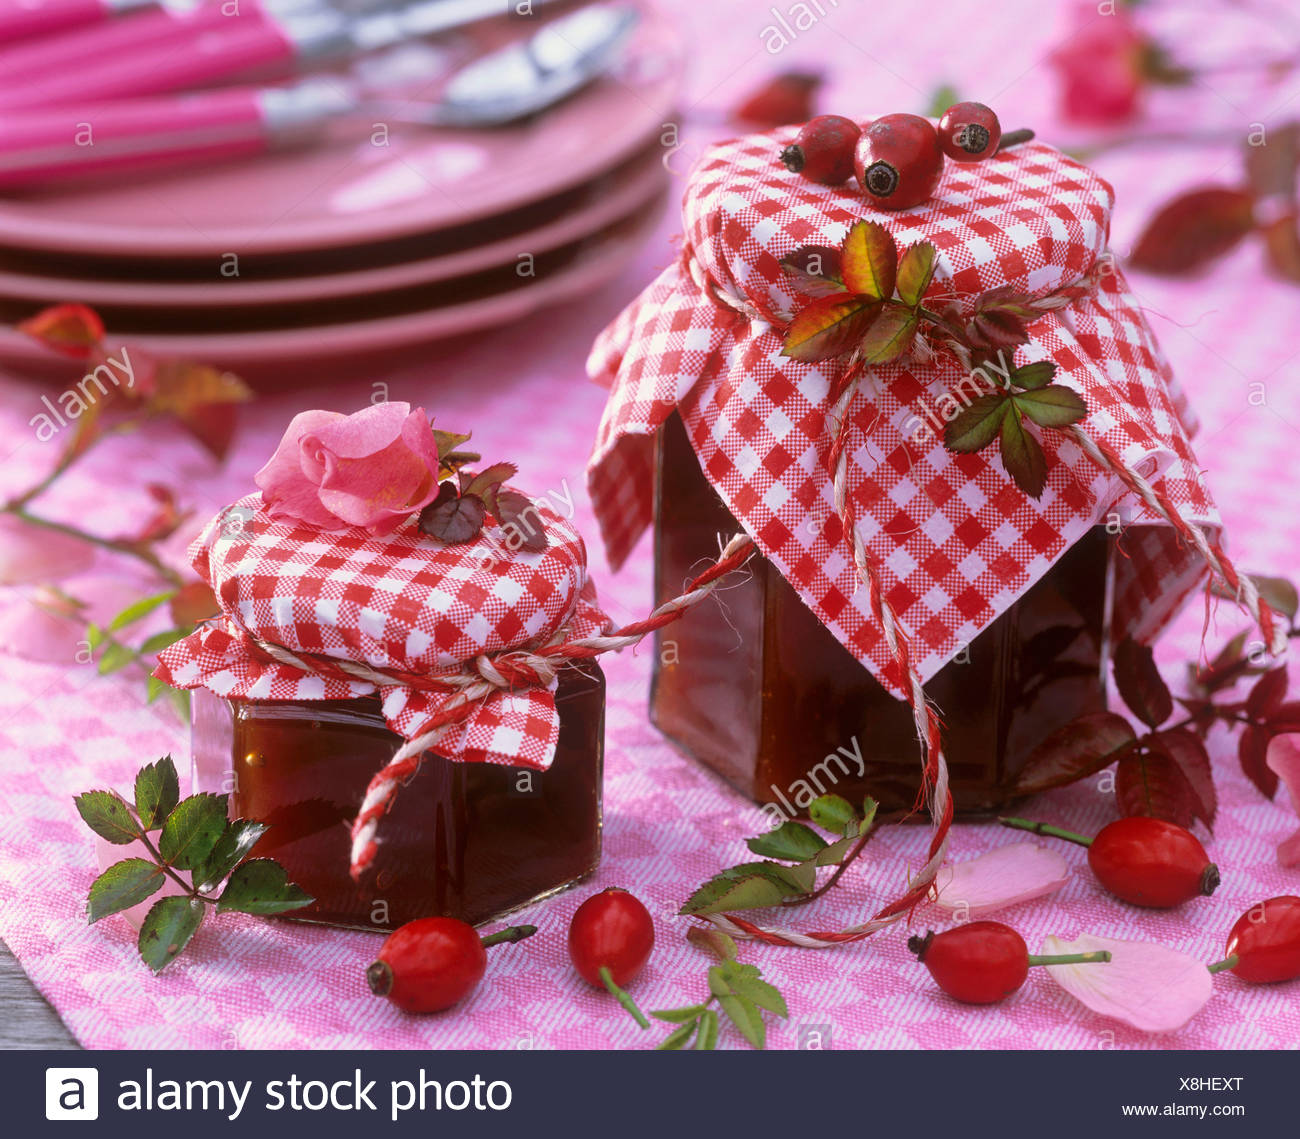 Making Jam Jars Stock Photos & Making Jam Jars Stock Images - Page 3 ...